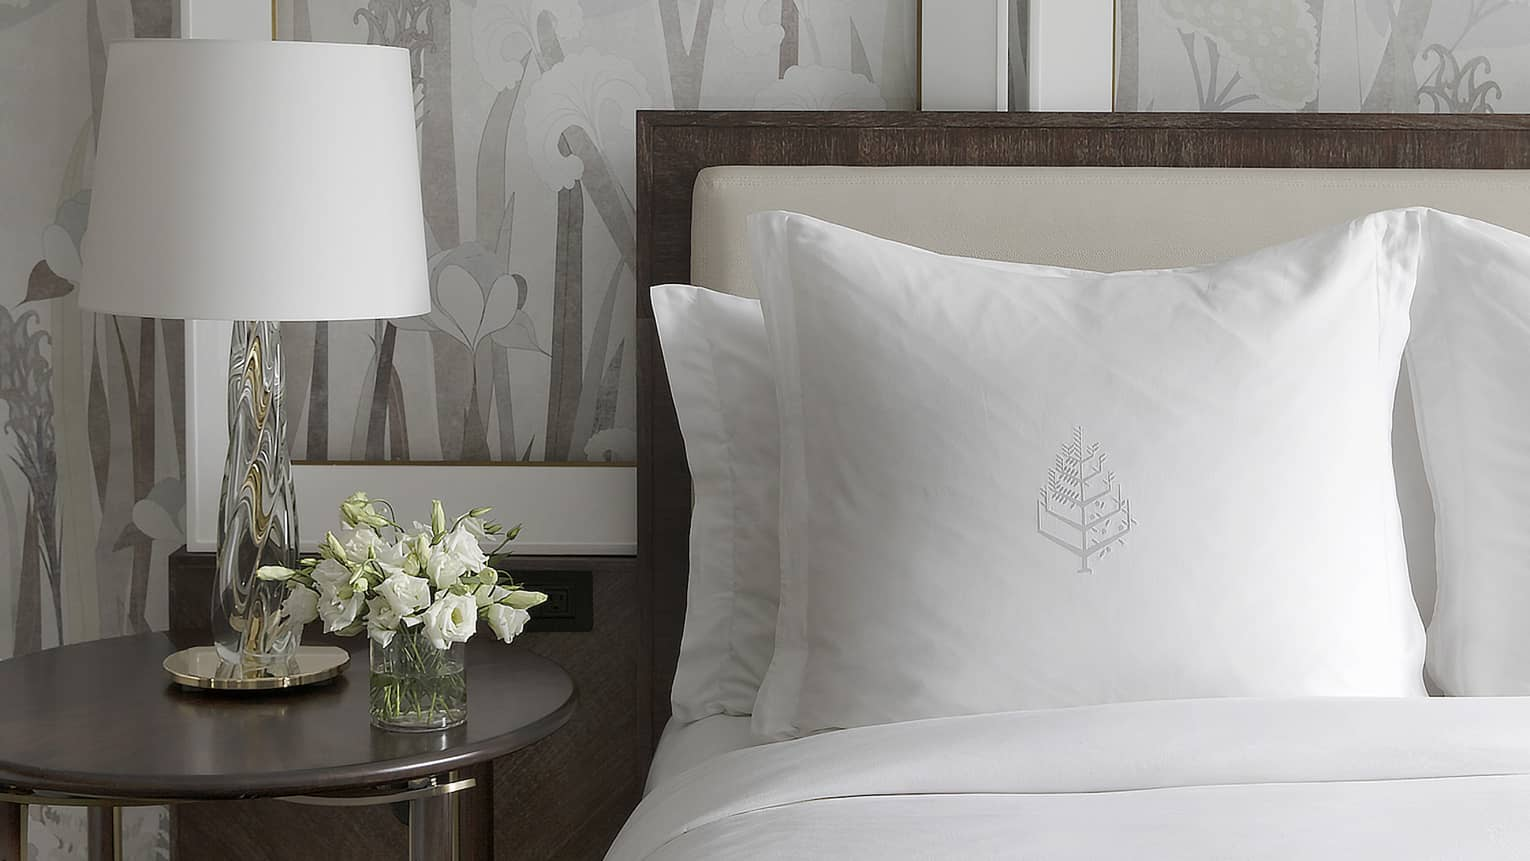 White flowers decorate a bedside table next to a bed with crisp, white sheets